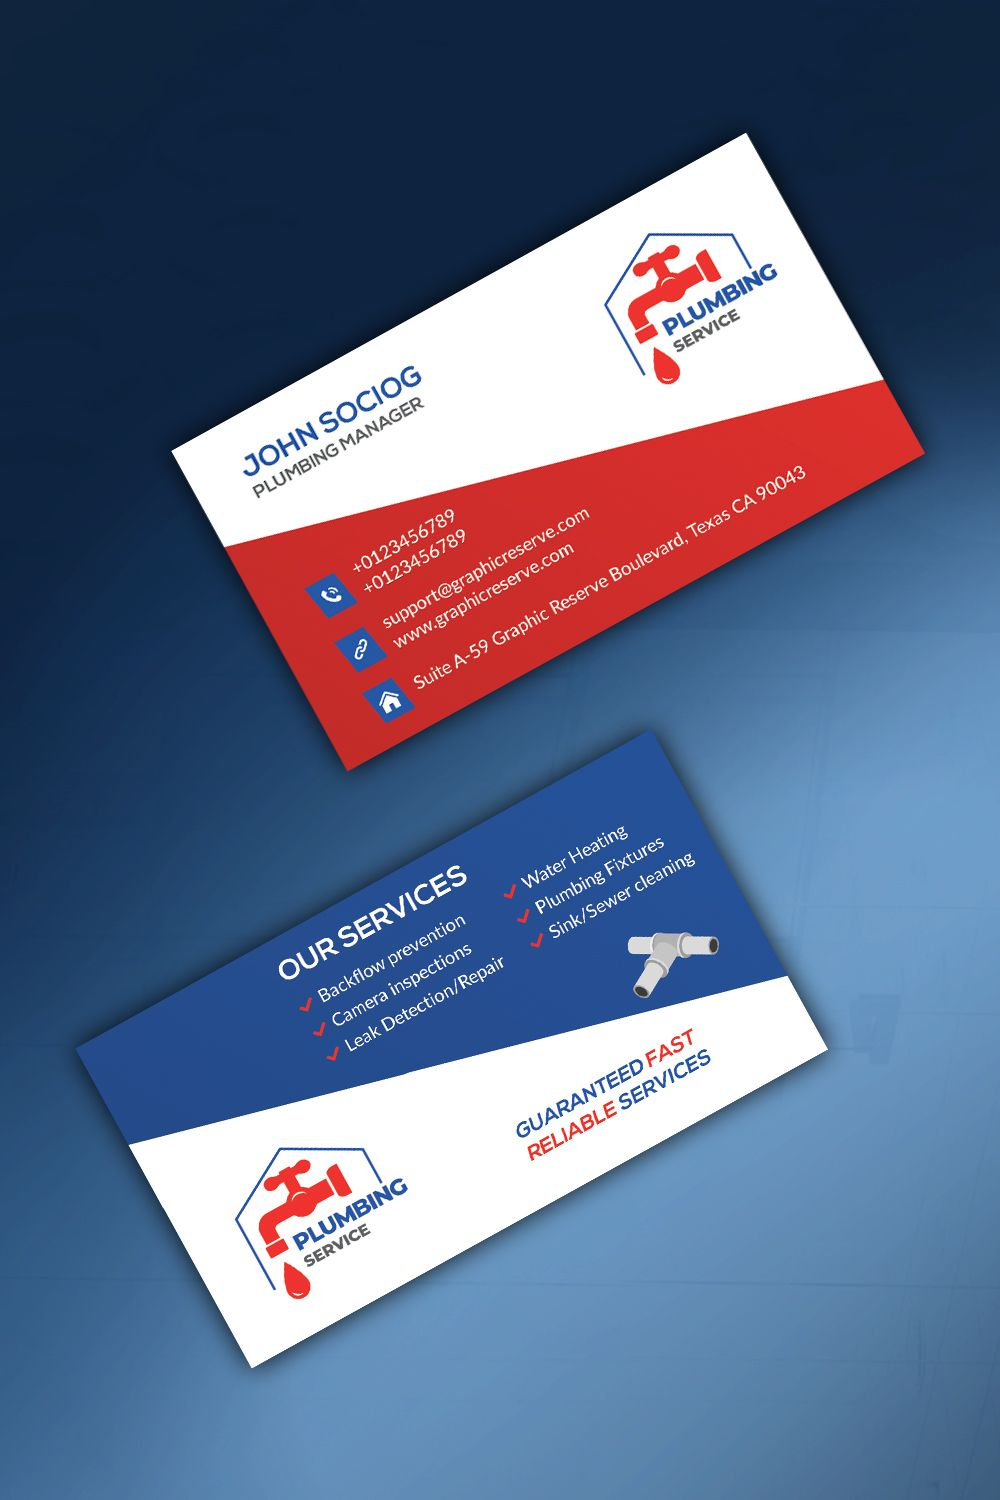 Plumber Business Card Business Card Graphic Modern Business Cards Business Cards